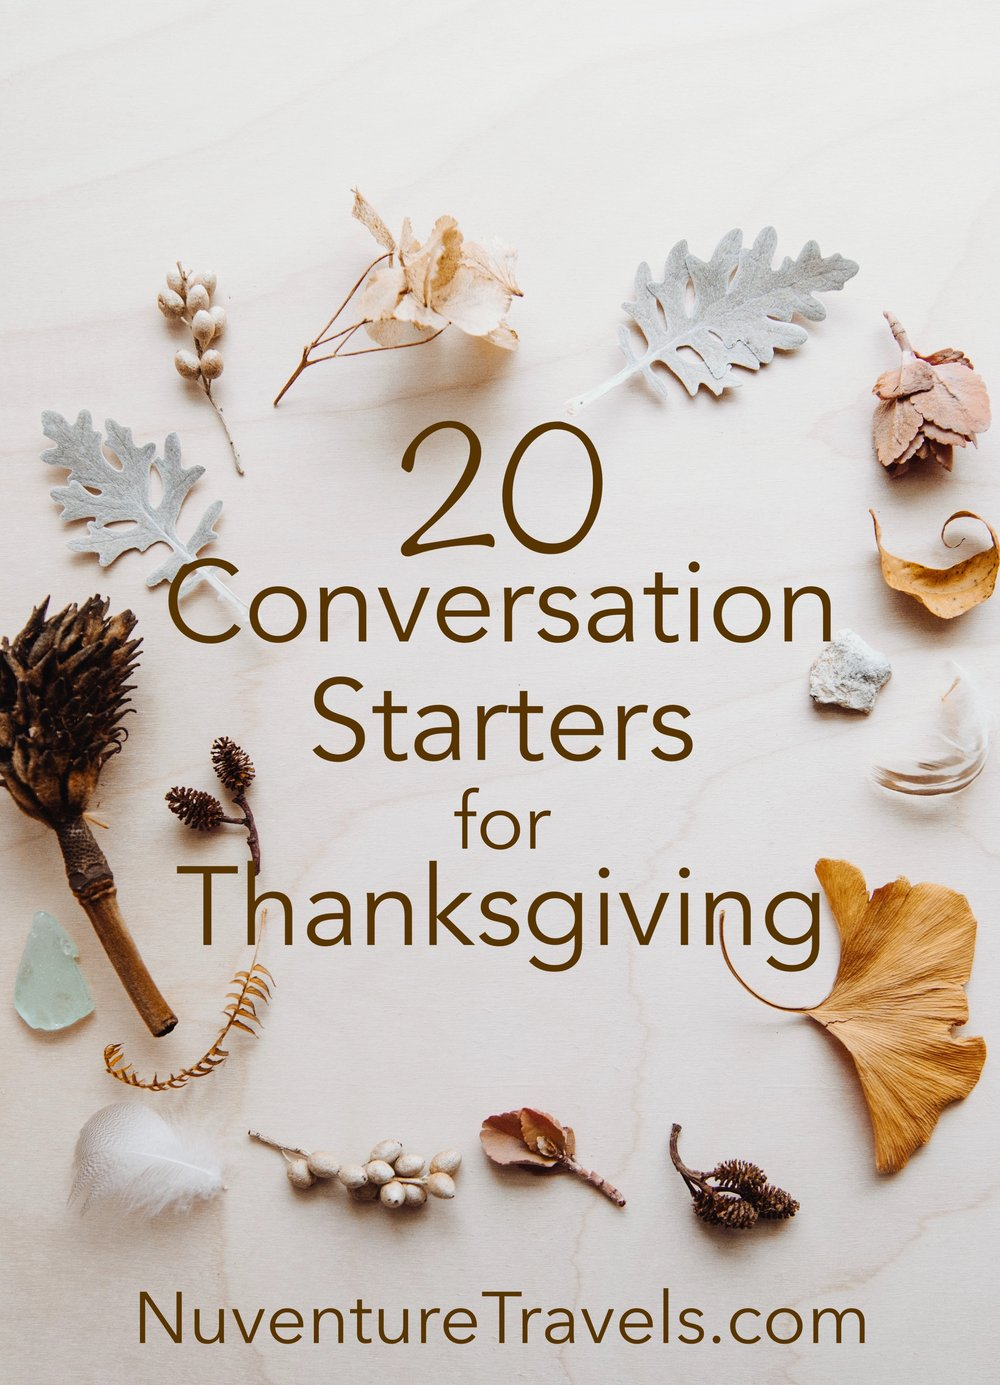 20 Conversation Starters for Thanksgiving, NuvetureTravels.com